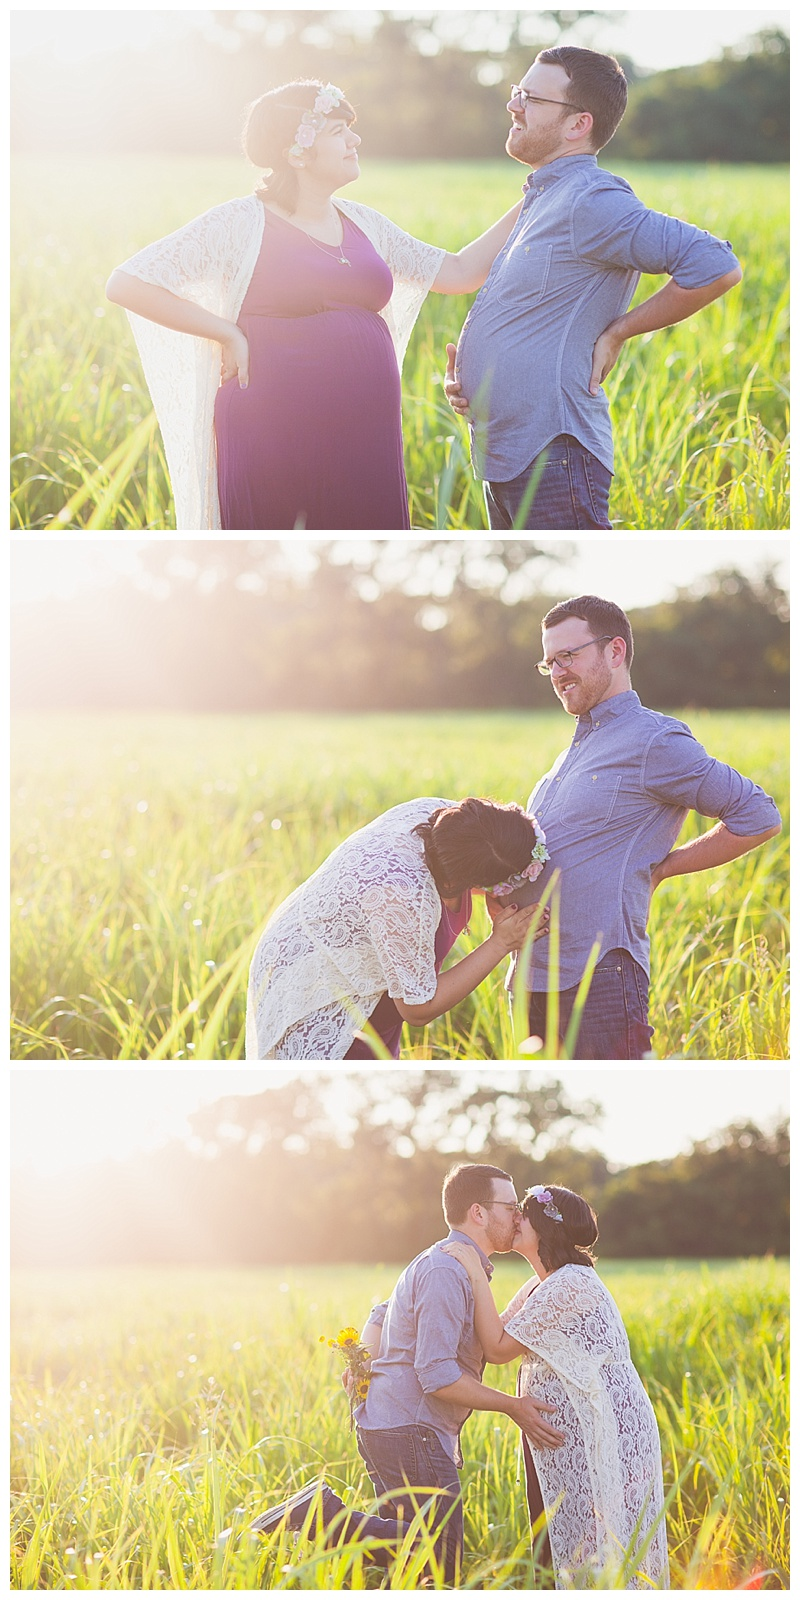 These three images show off the sweet humor these two share between the two of them! They are too cute!